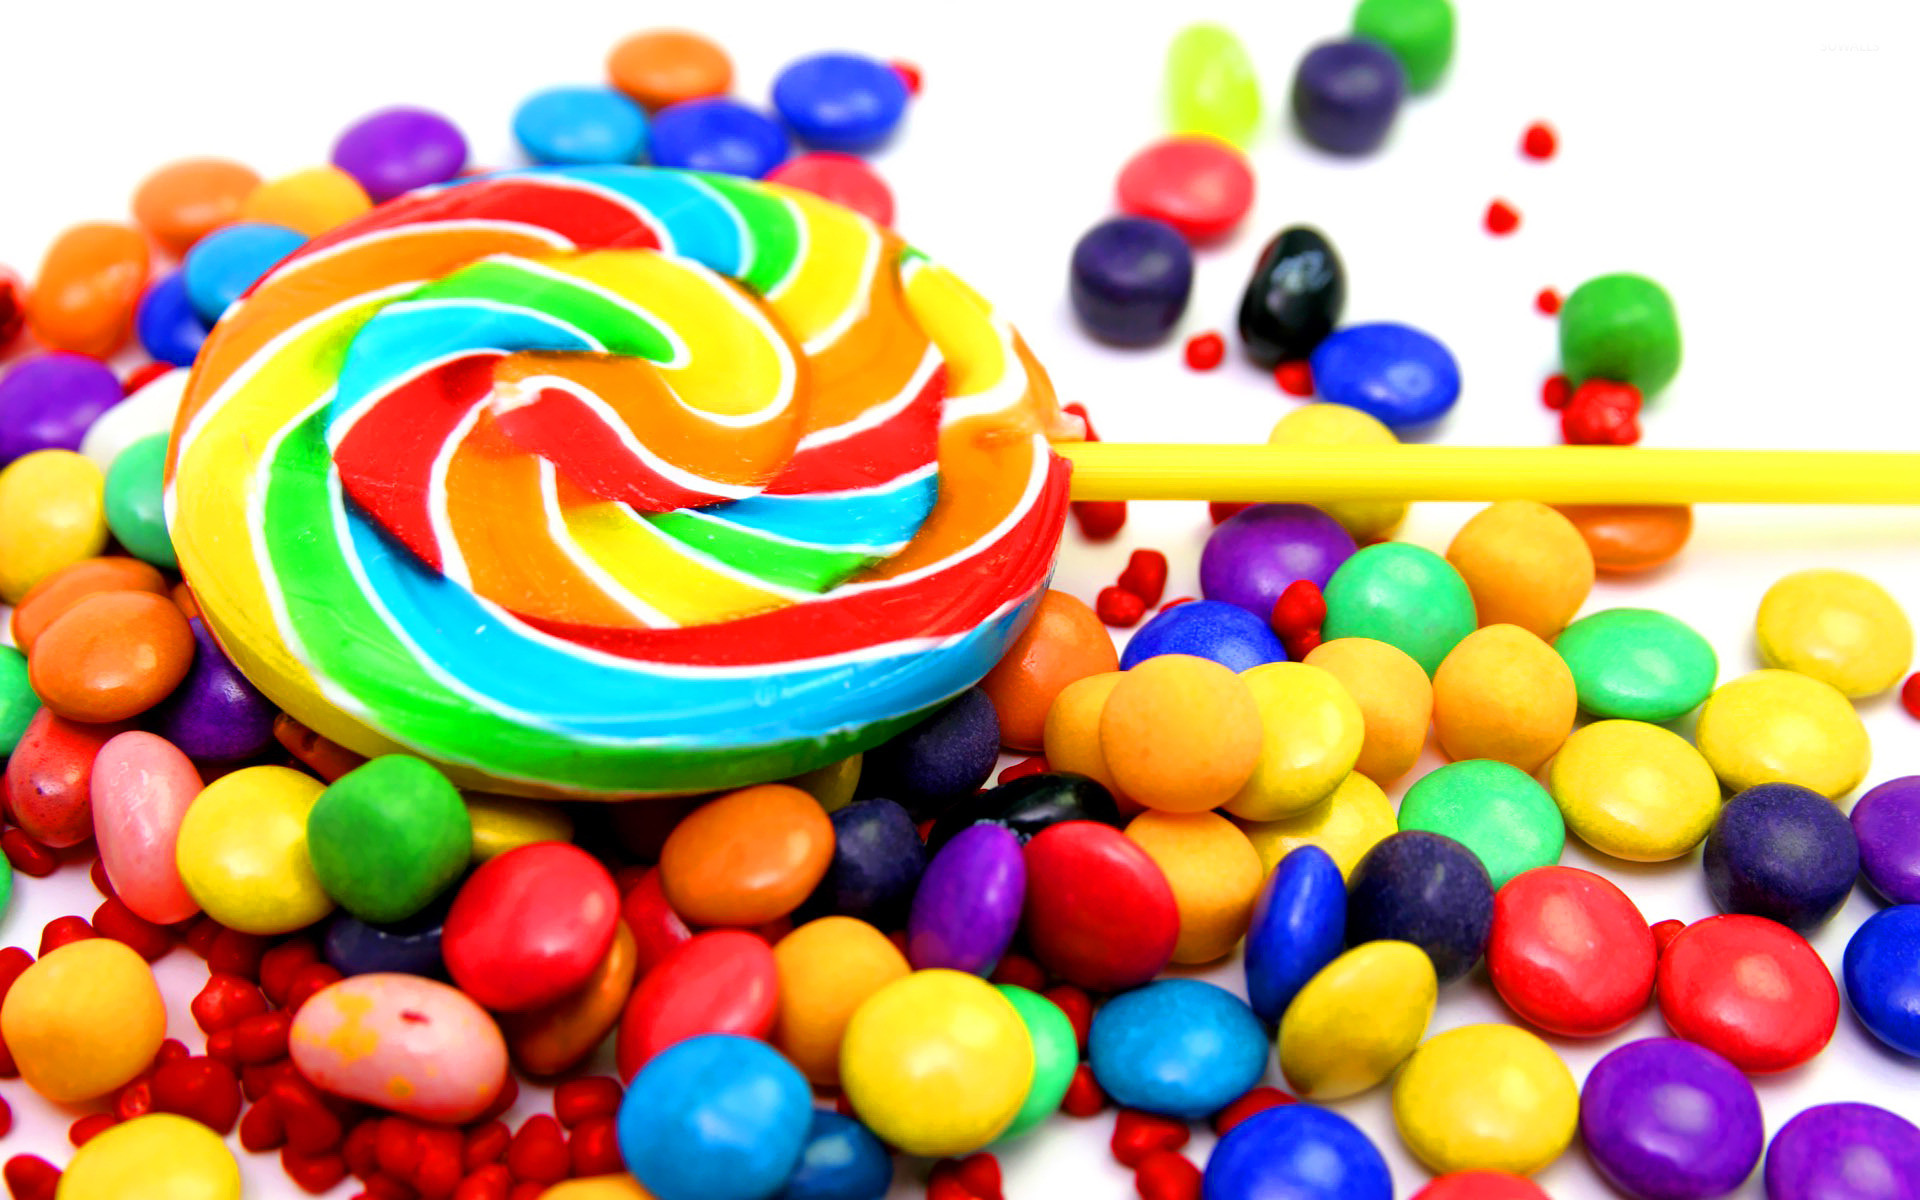 1920x1200 Filename: colorful-candy-18822-.jpg